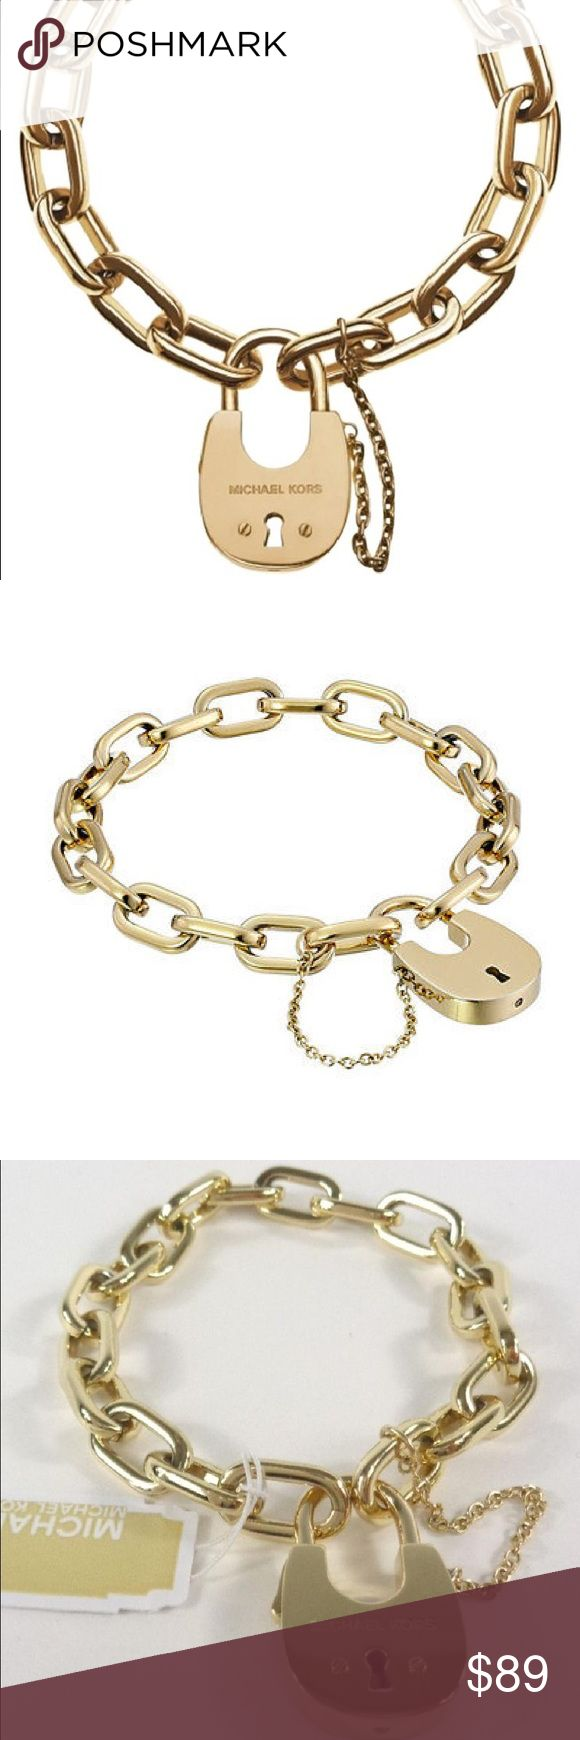 Michael Kors Padlock Gold tone bracelet Michael Kors MKJ4627710 Gold Padlock Chain Bracelet    MSRP: $125.00 plus tax    New with tags and 100% authentic    MICHAEL KORS WOMEN'S  GOLD TONE PADLOCK   STAINLESS STEEL CHAIN BRACELET  STYLE # MKJ4627710  Approximately 7.5 in length  Comes with original box, pouch, and care card. Michael Kors Jewelry Bracelets